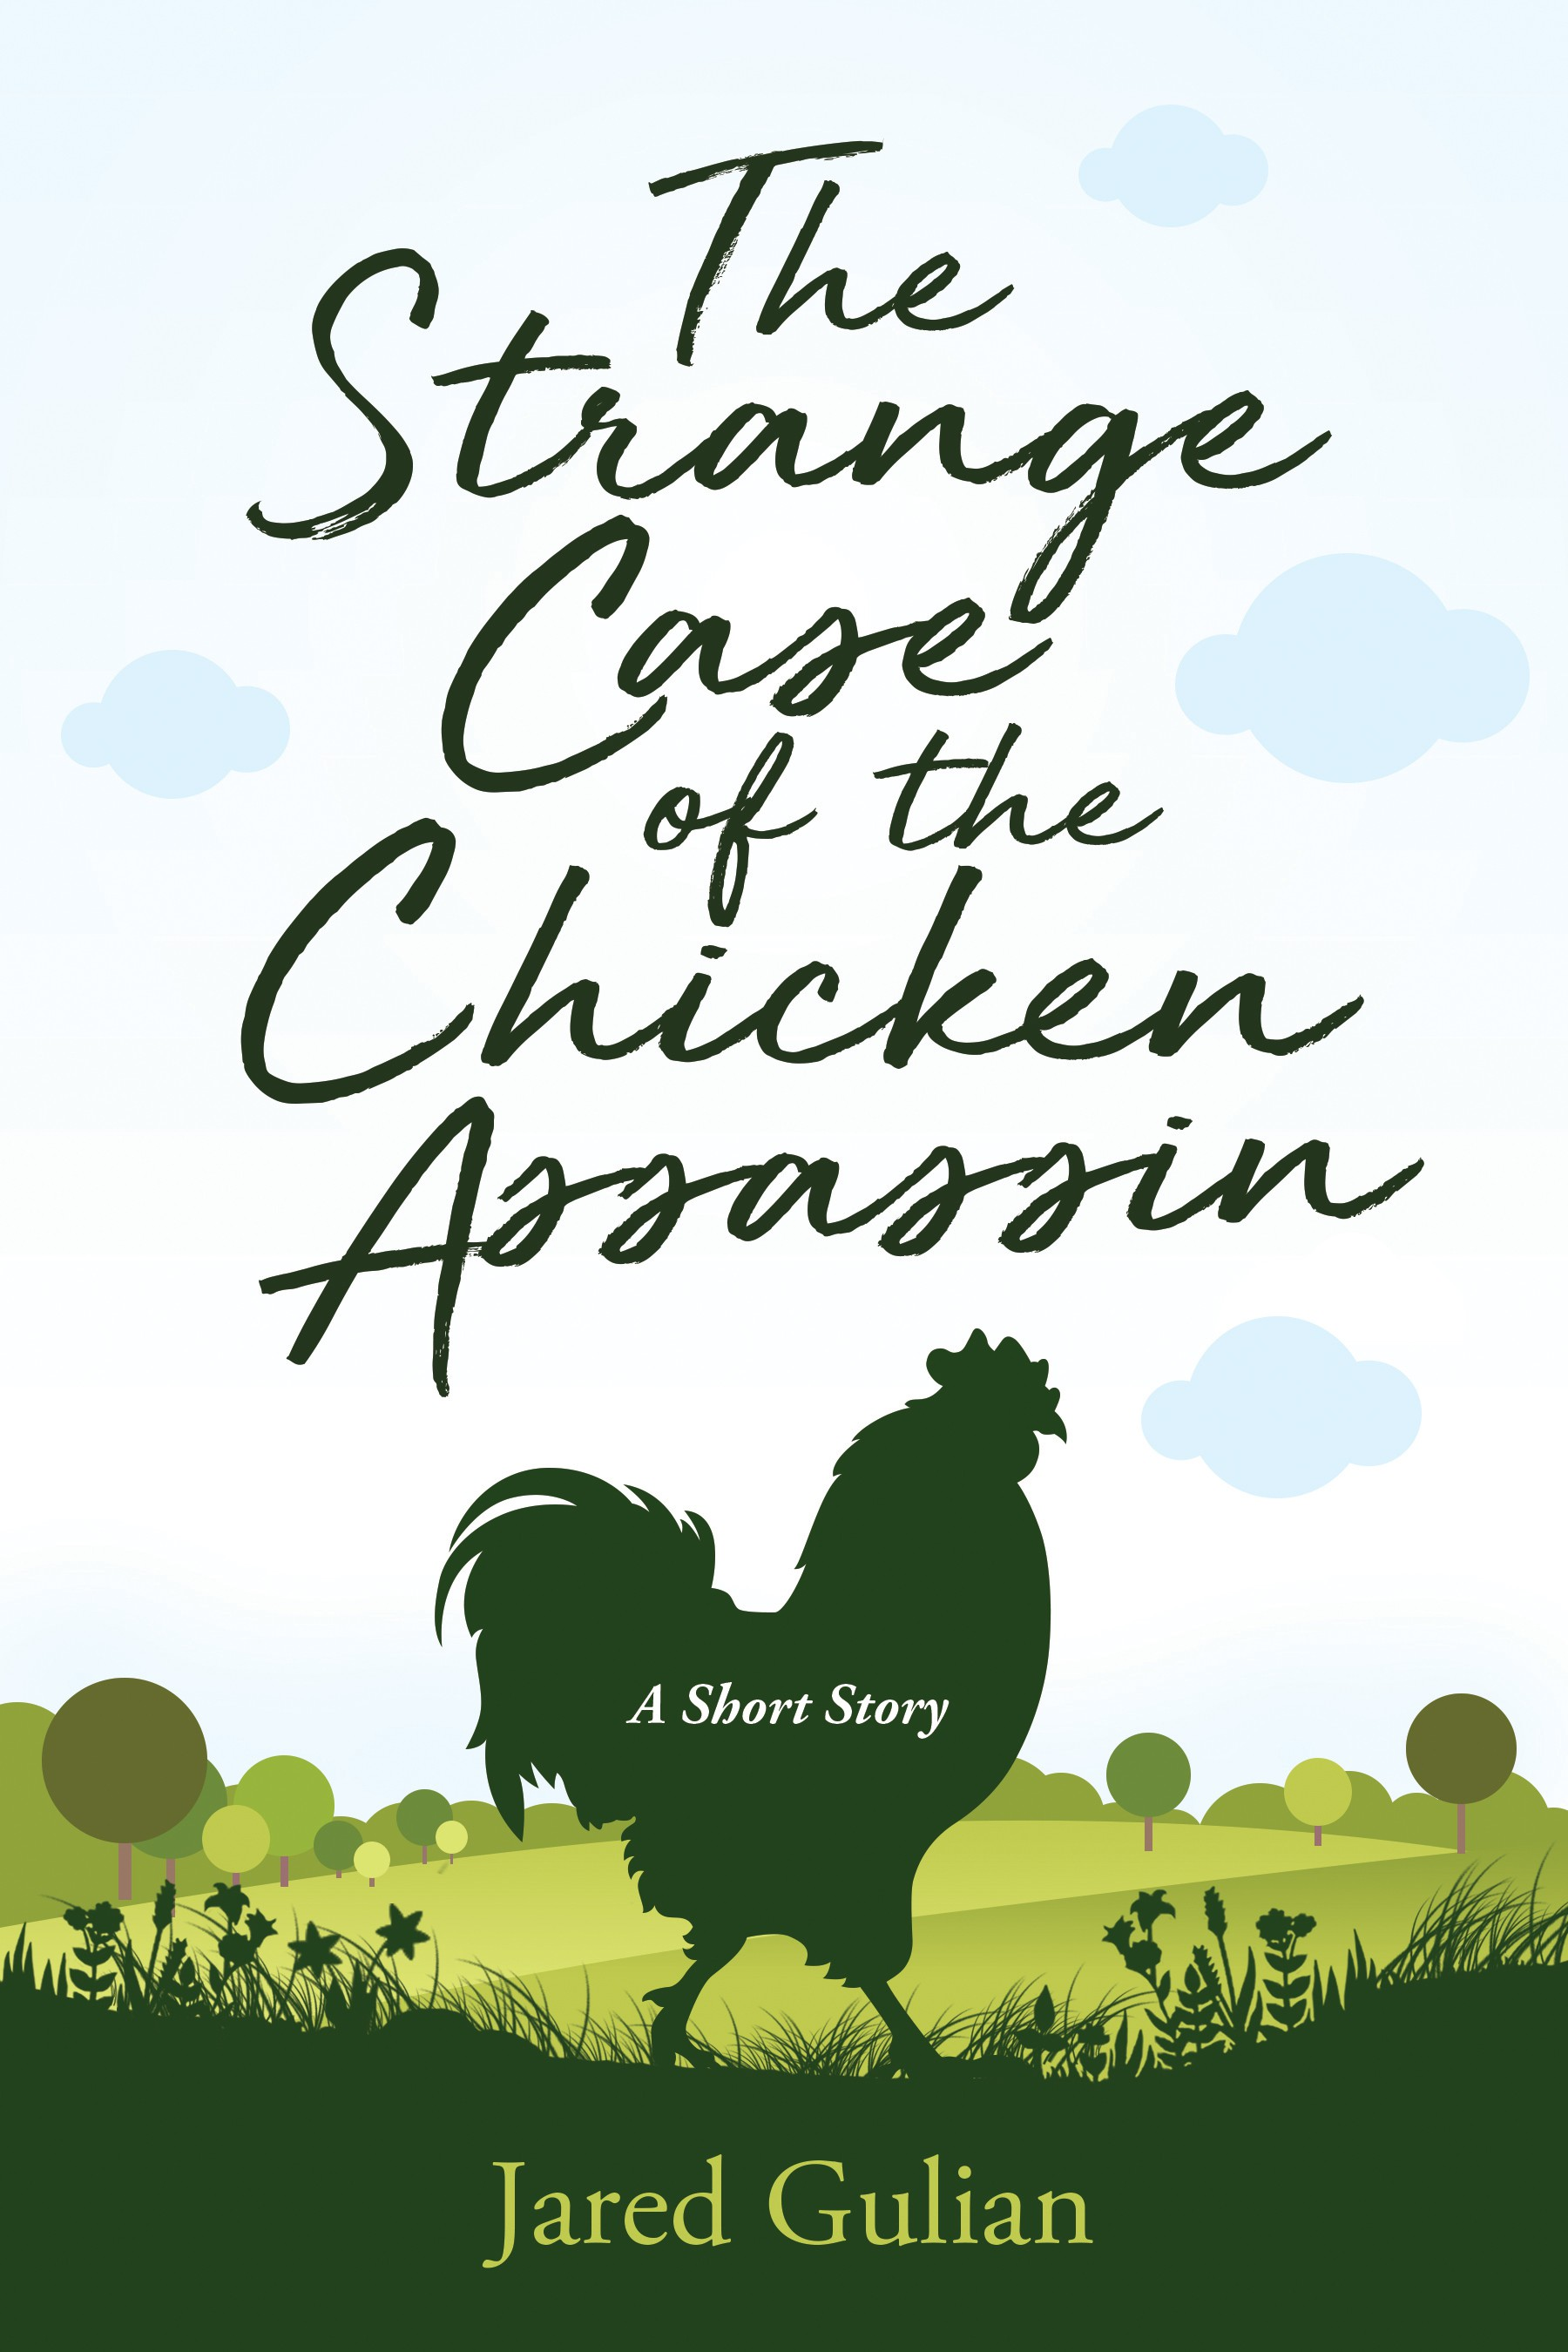 The Strange Case of the Chicken Assassin: a short story